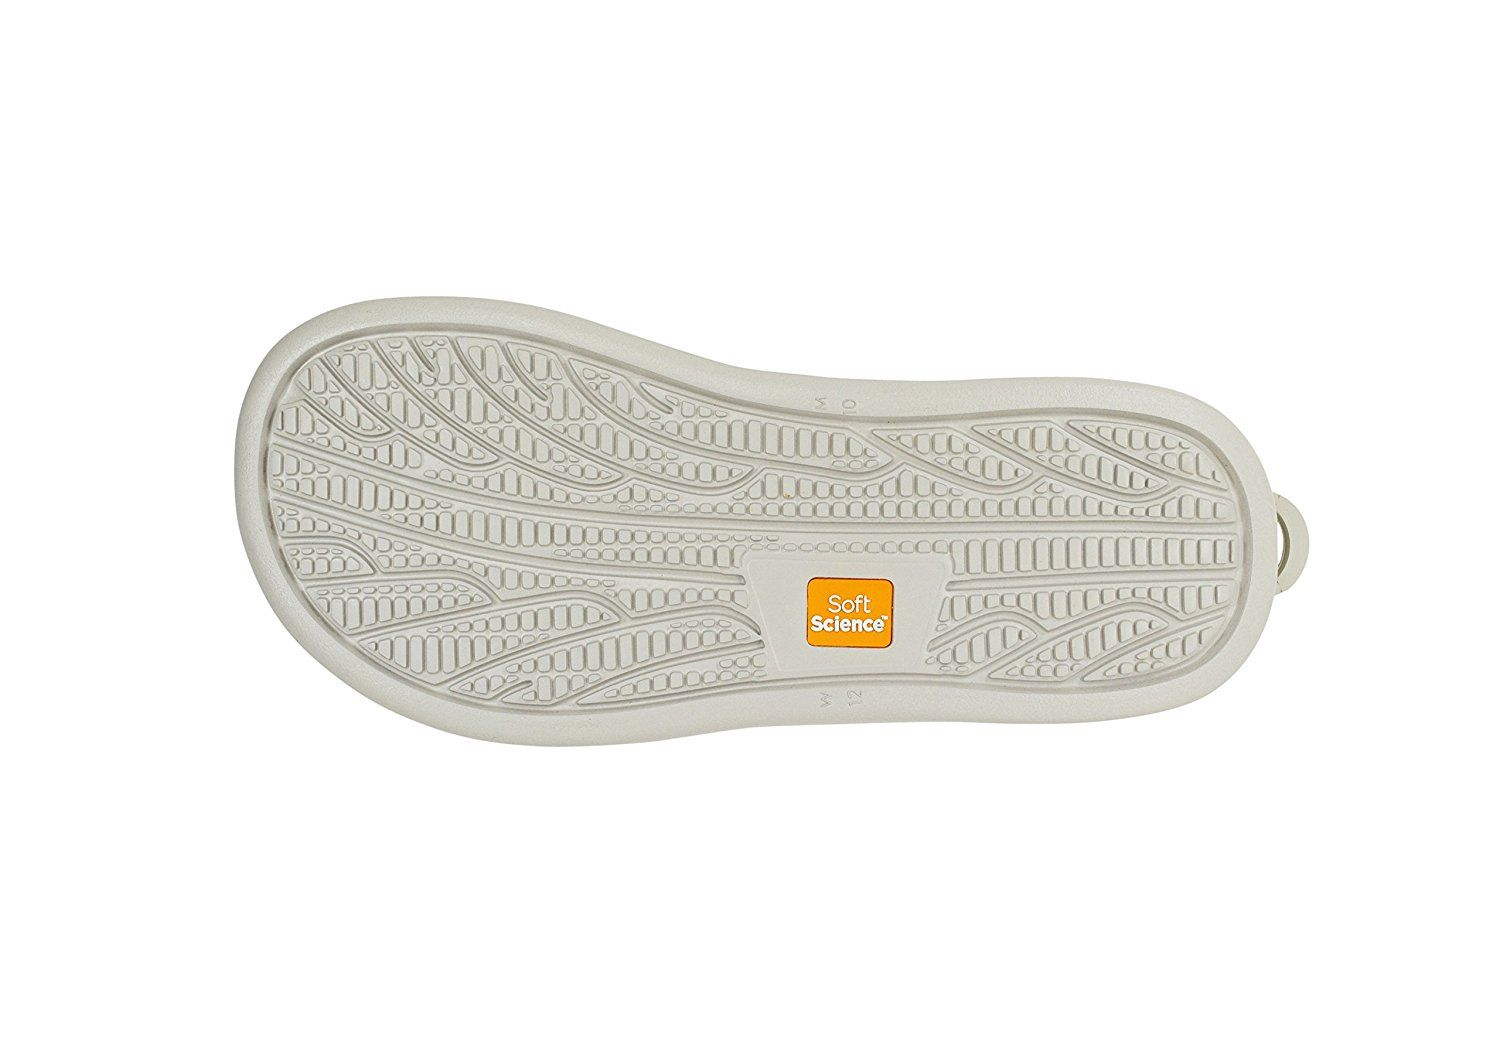 7d8732fede6f Soft Science Unisex The Skiff 2.0 Canvas Flip Flops     Check out this  great product. (This is an affiliate link)  niceshoes